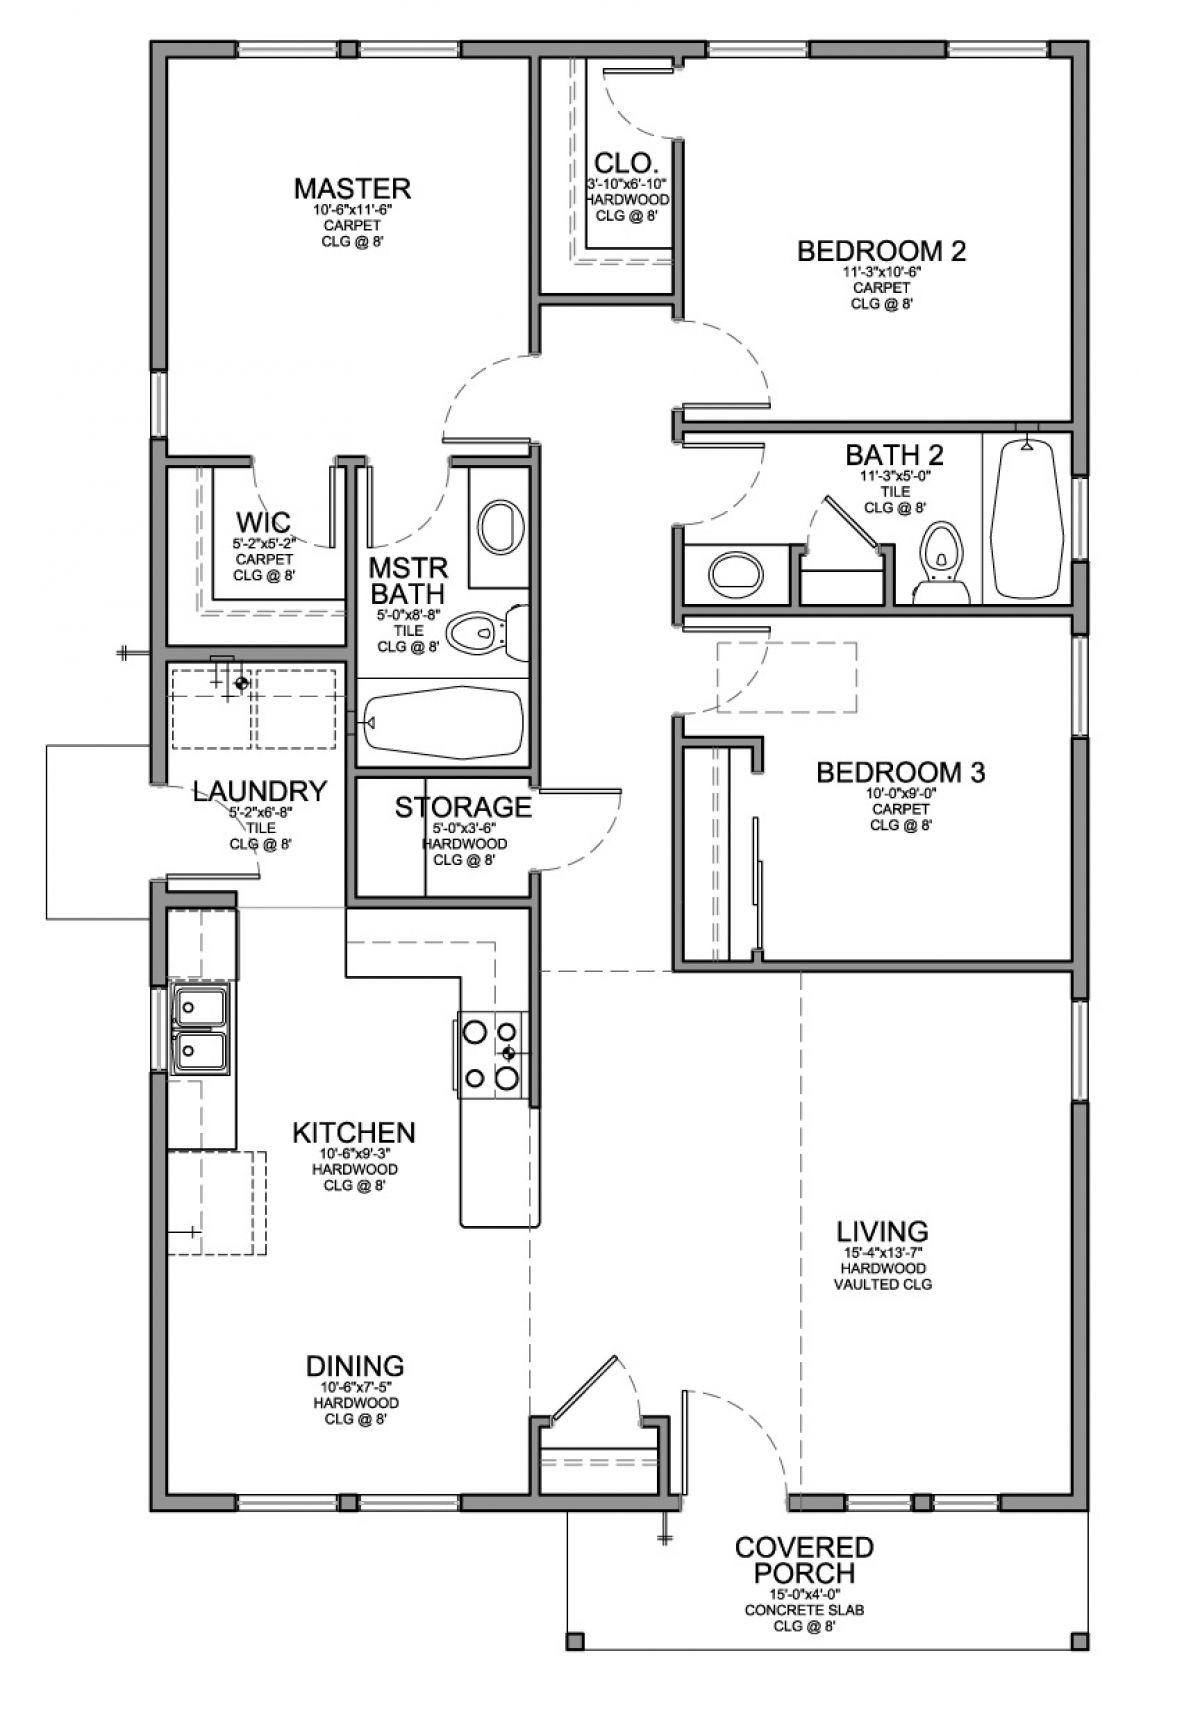 Cost Of Building A 3 Bedroom House Elegant Floor Plans and Cost Build Plan for Small House Tamilnadu